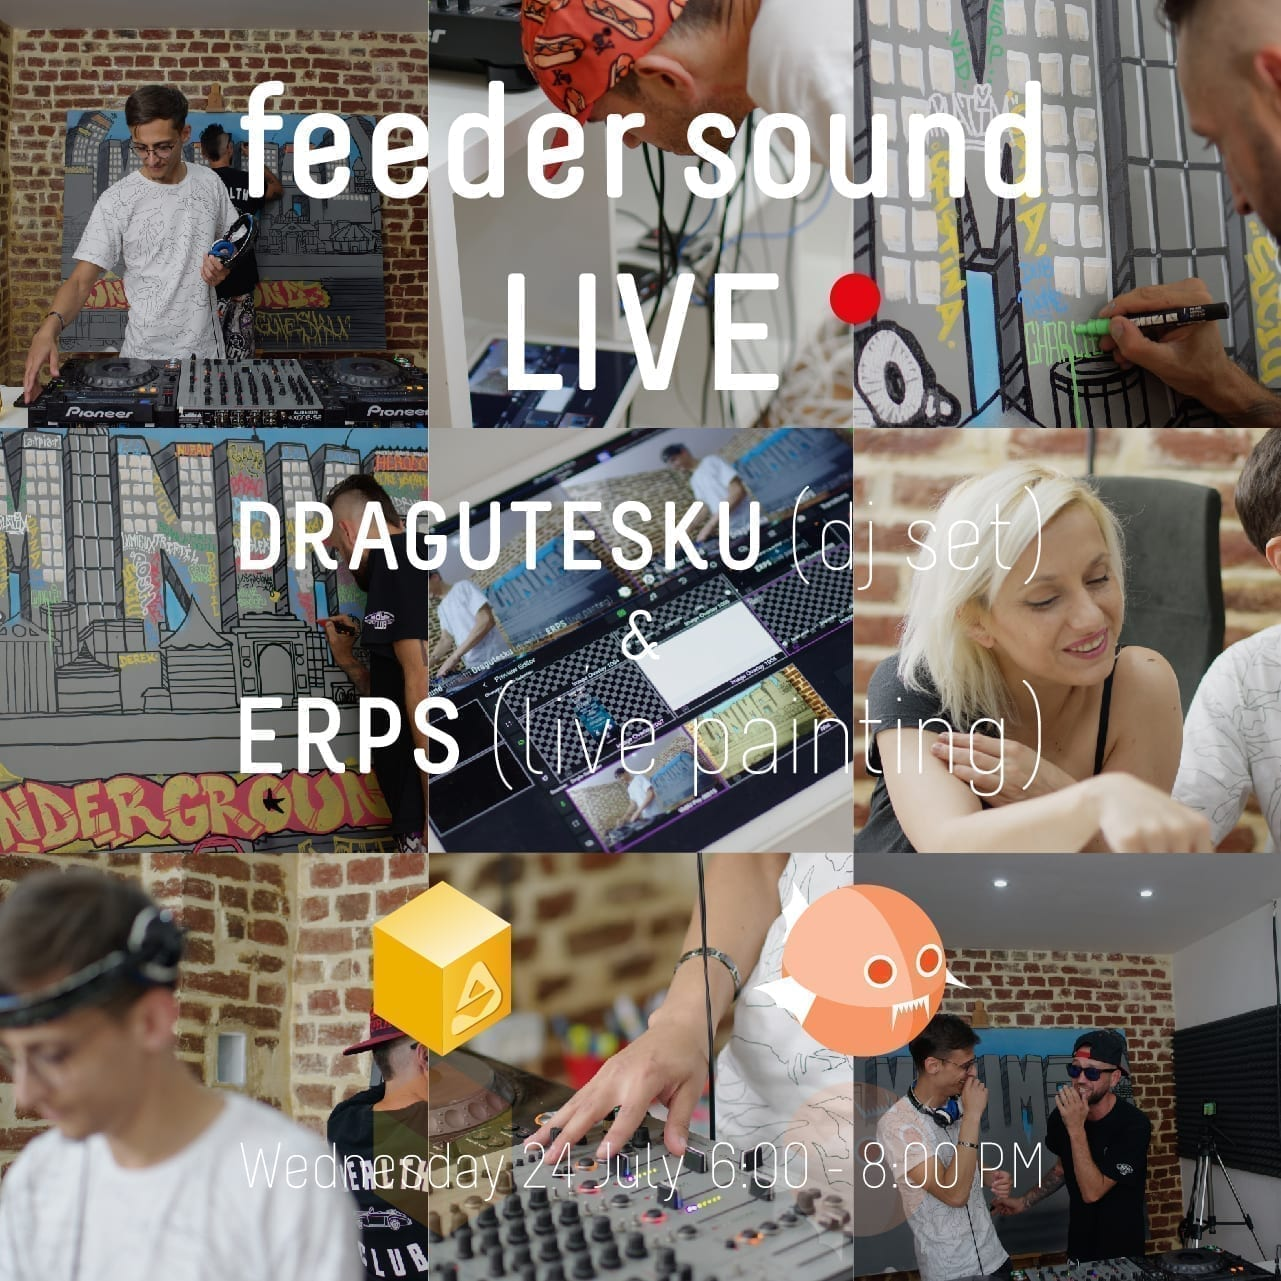 BTLT feeder sound live Dragutesku & ERPS